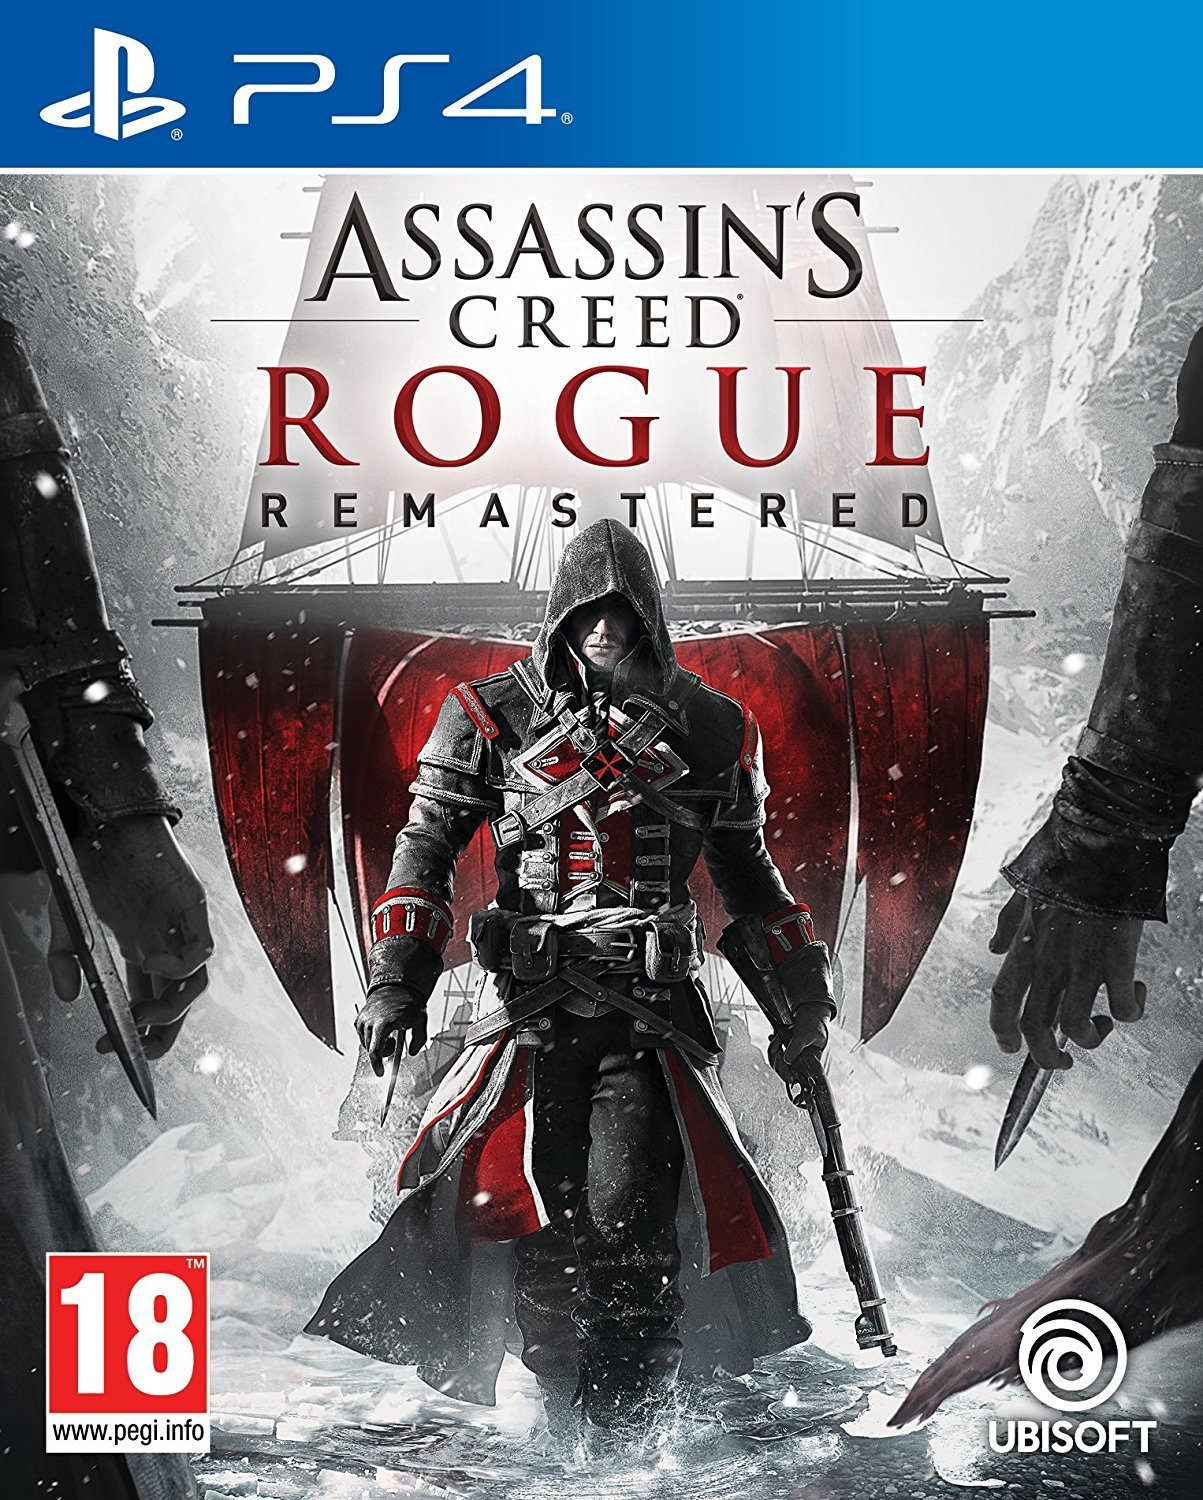 PS4 Assassin's Creed Rogue Remastered (PlayStation 4)